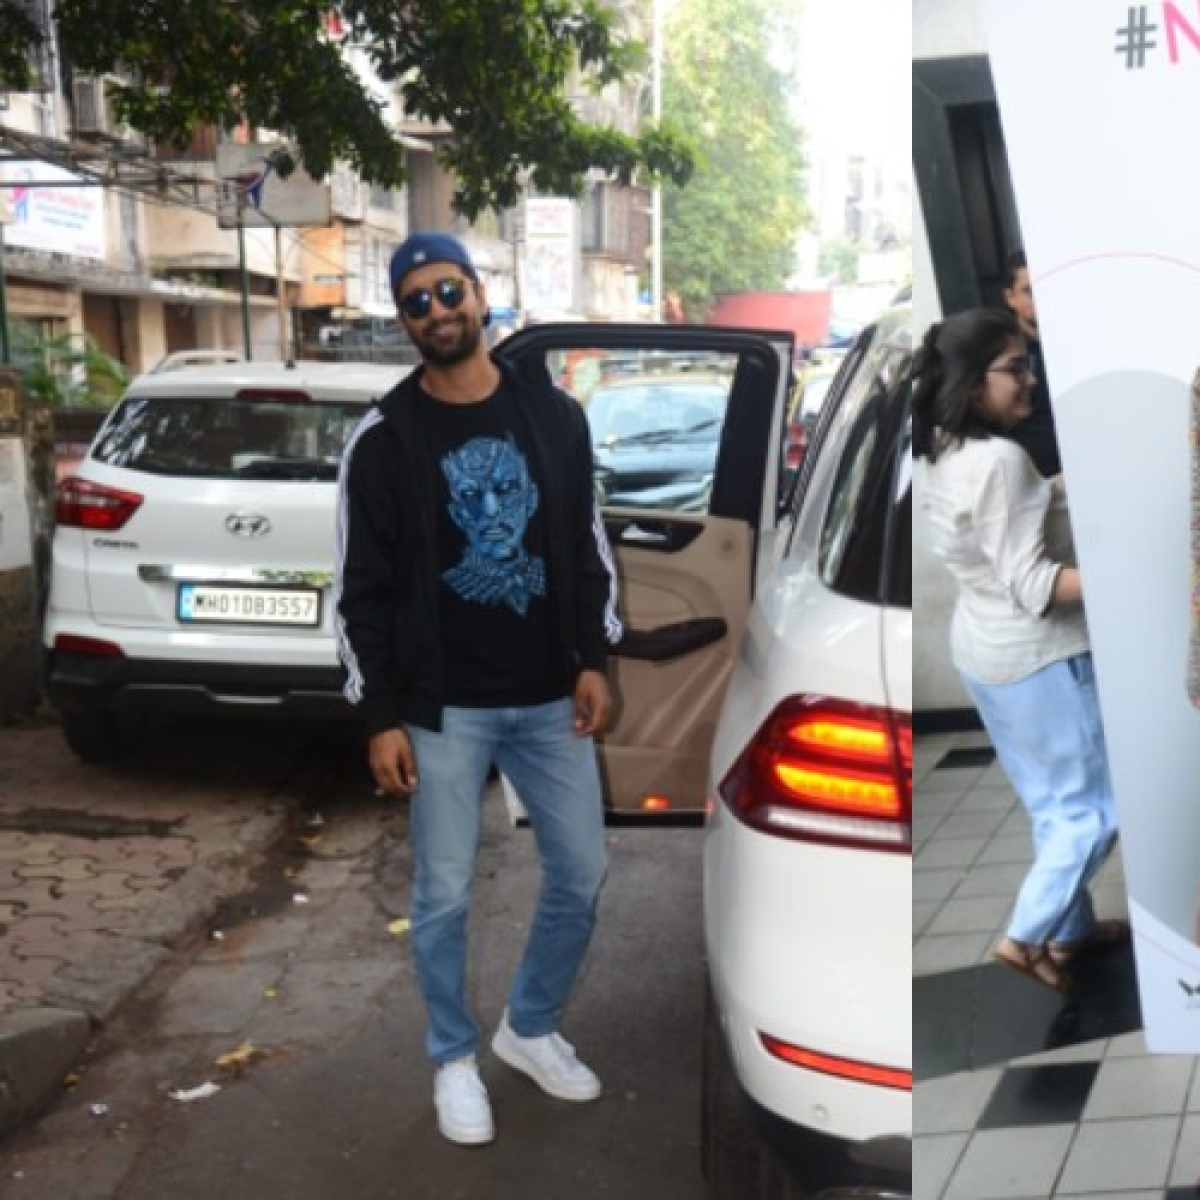 No more Monday blues: Vicky Kaushal, Jacqueline Fernandez step out with a smile to light our day up